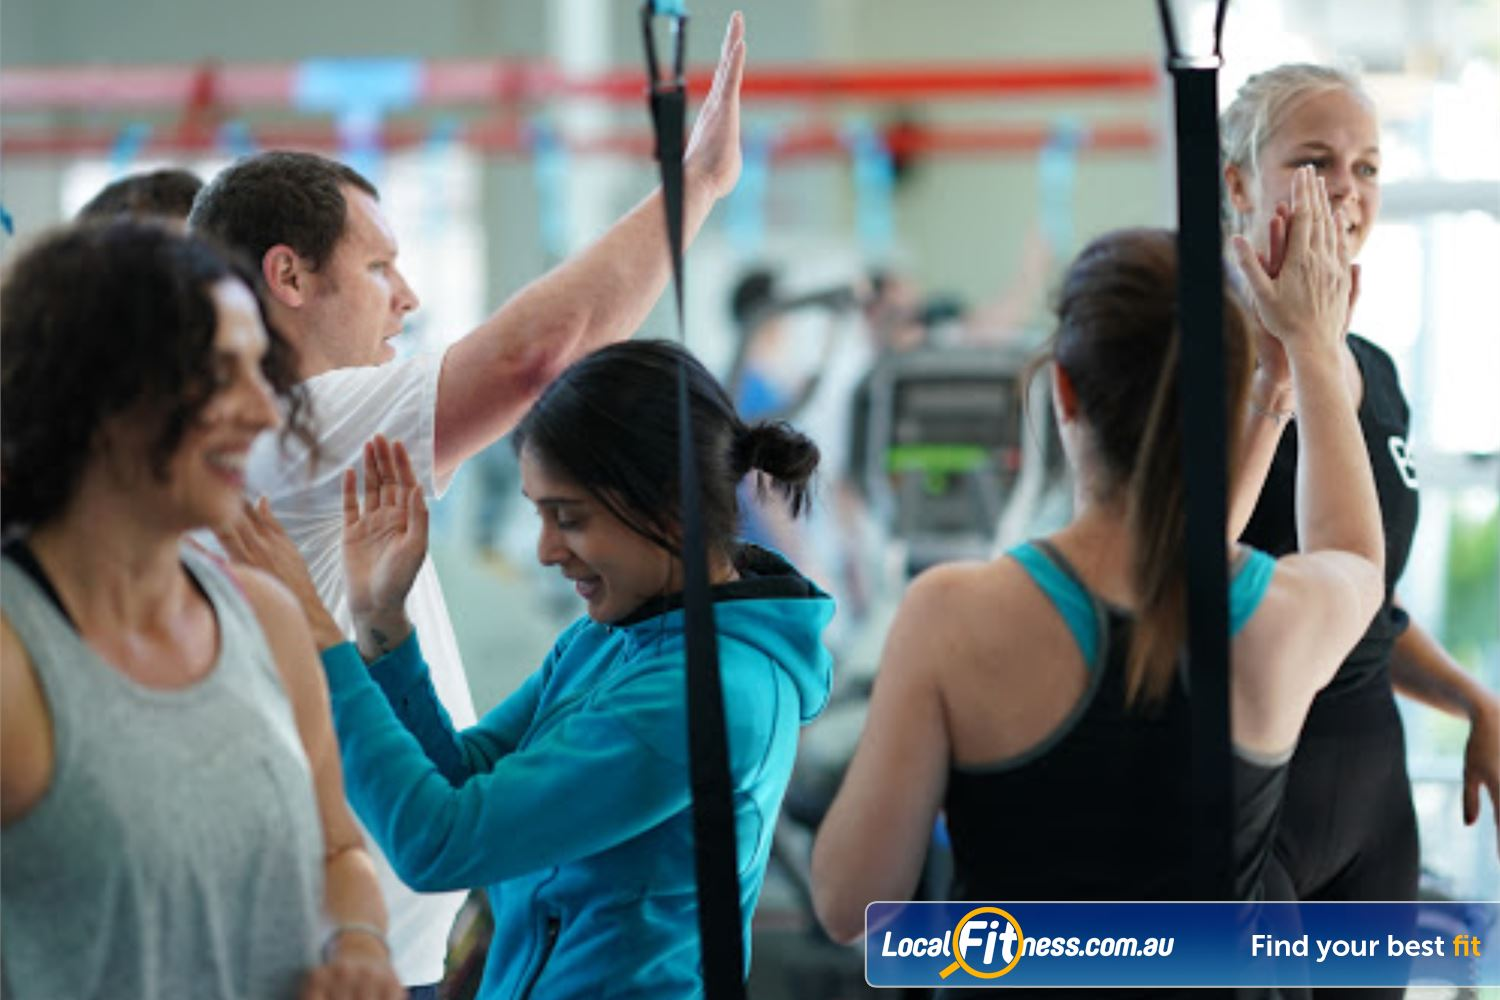 North Ryde Fitness & Aquatic North Ryde High 5's all round after you complete our challenging HIIT classes.